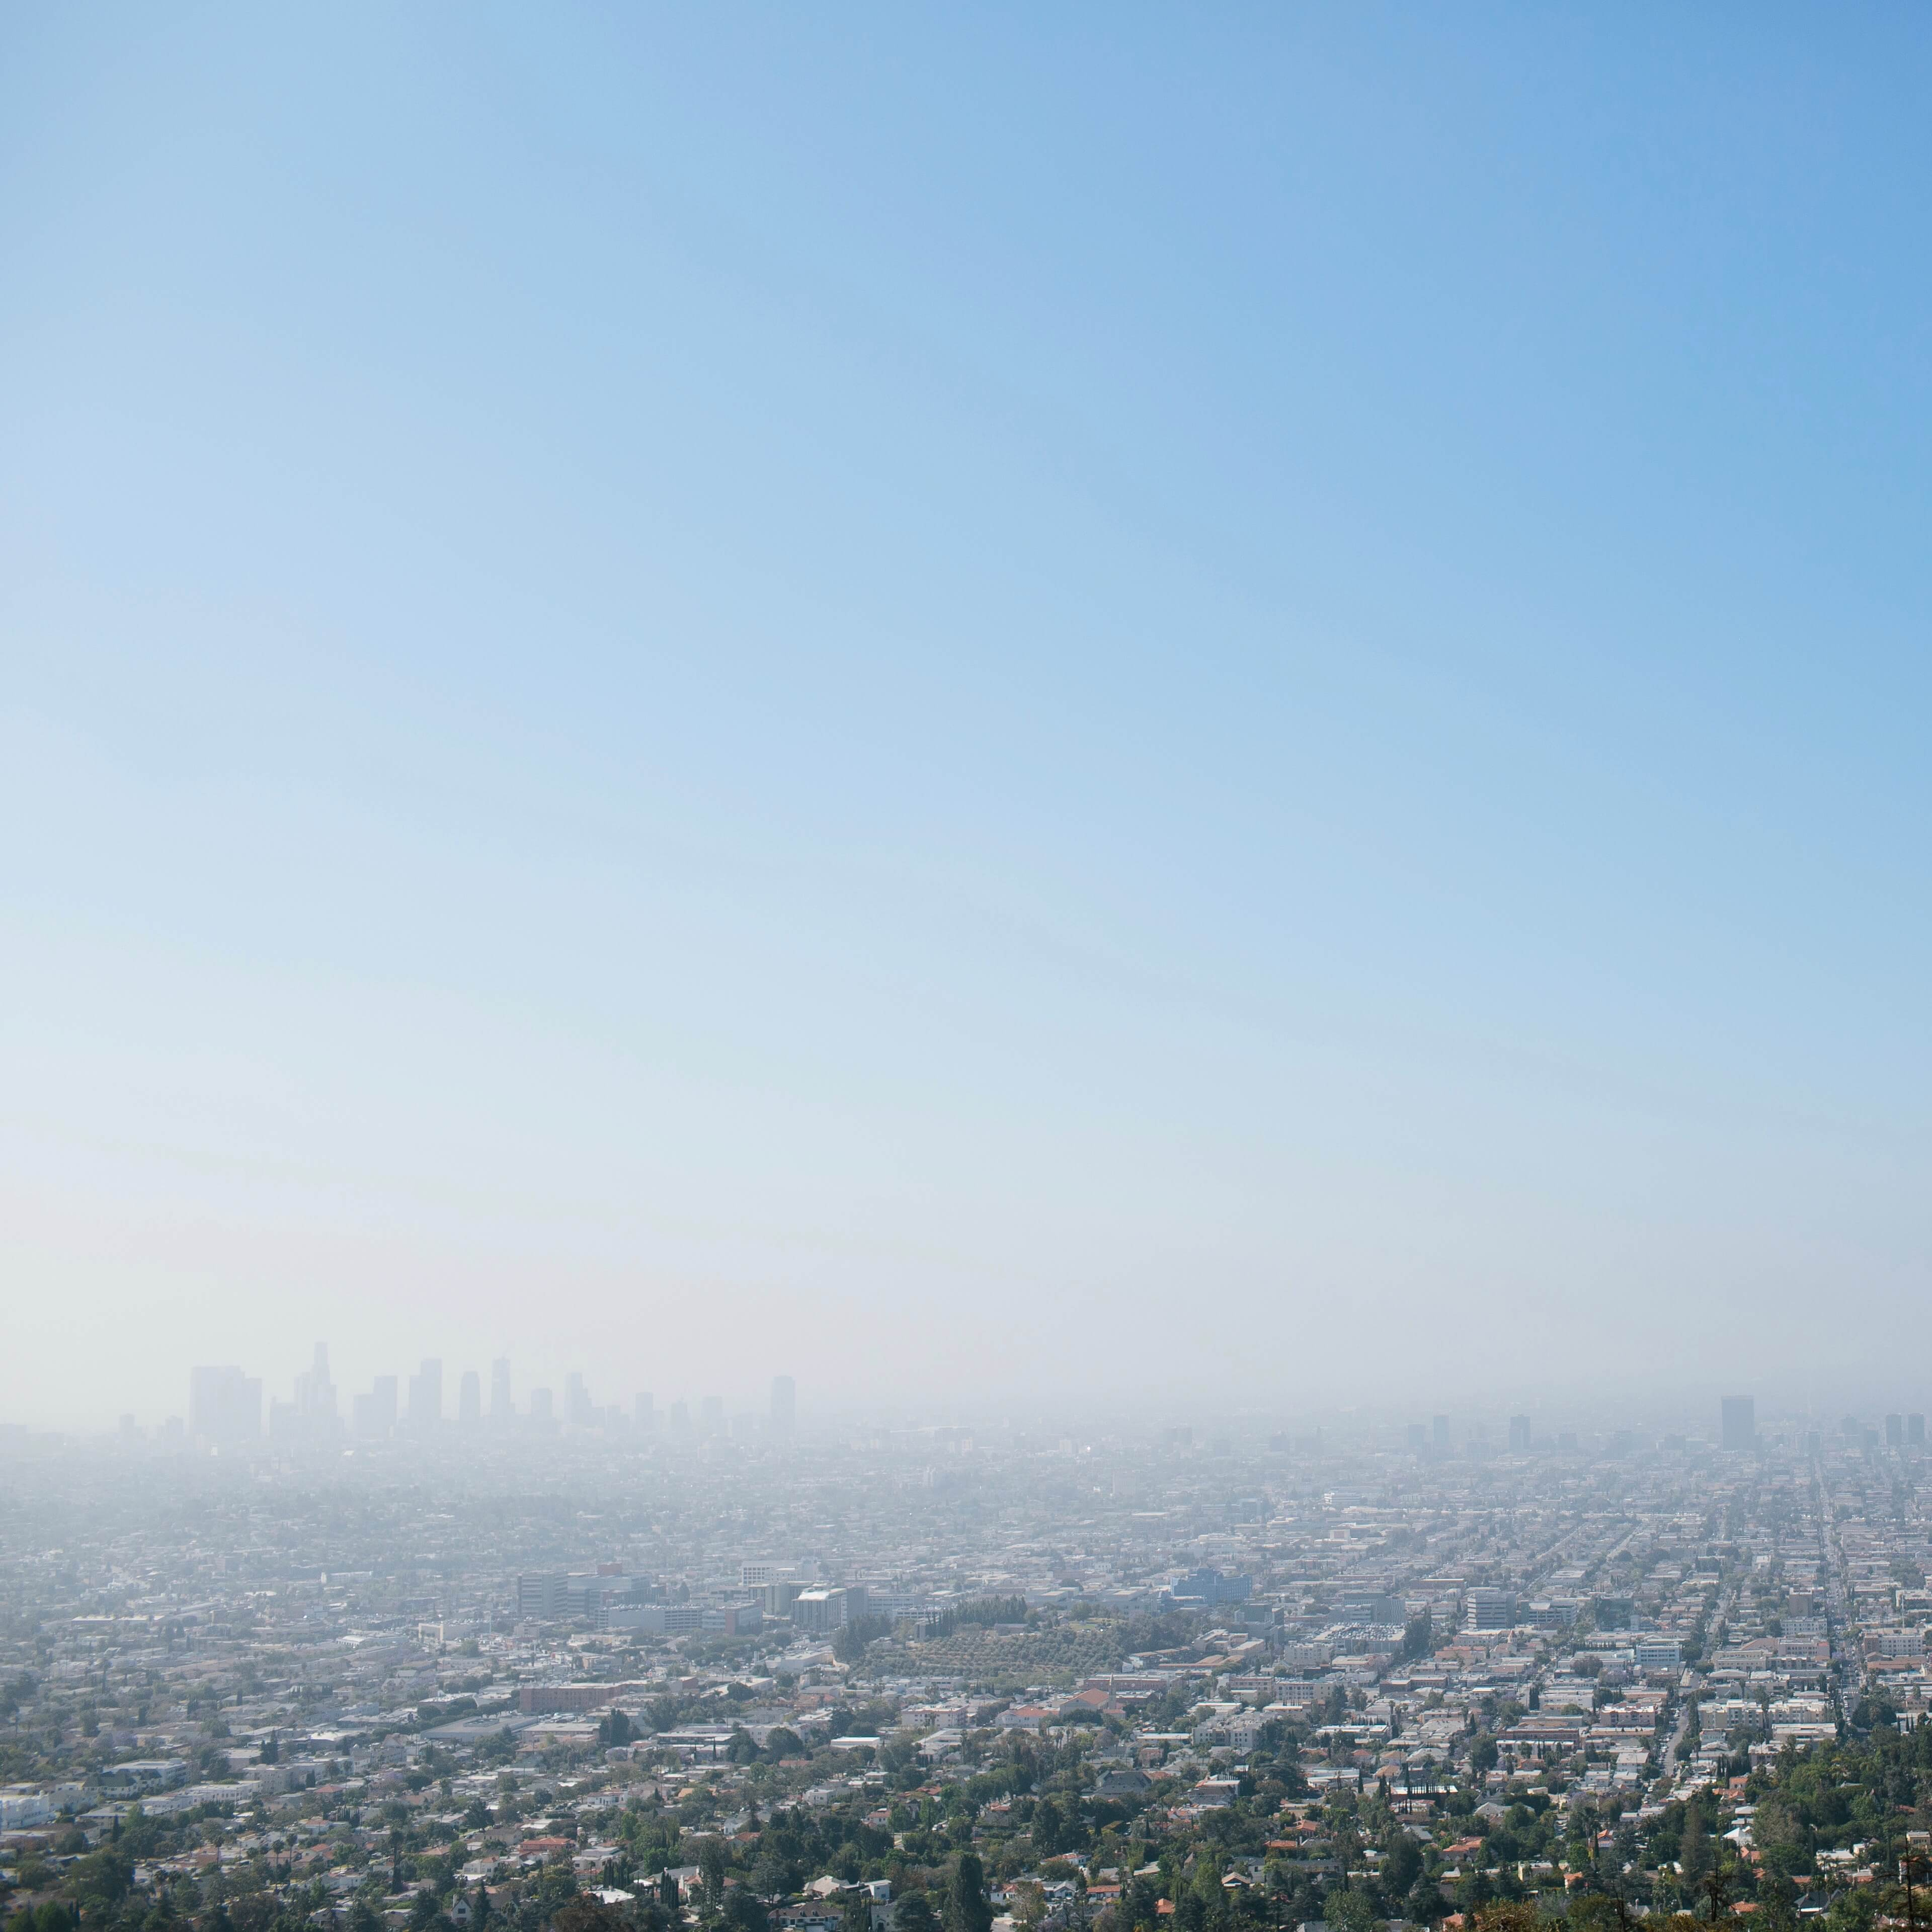 Photo of the city from Griffith Observatory in Los Angeles